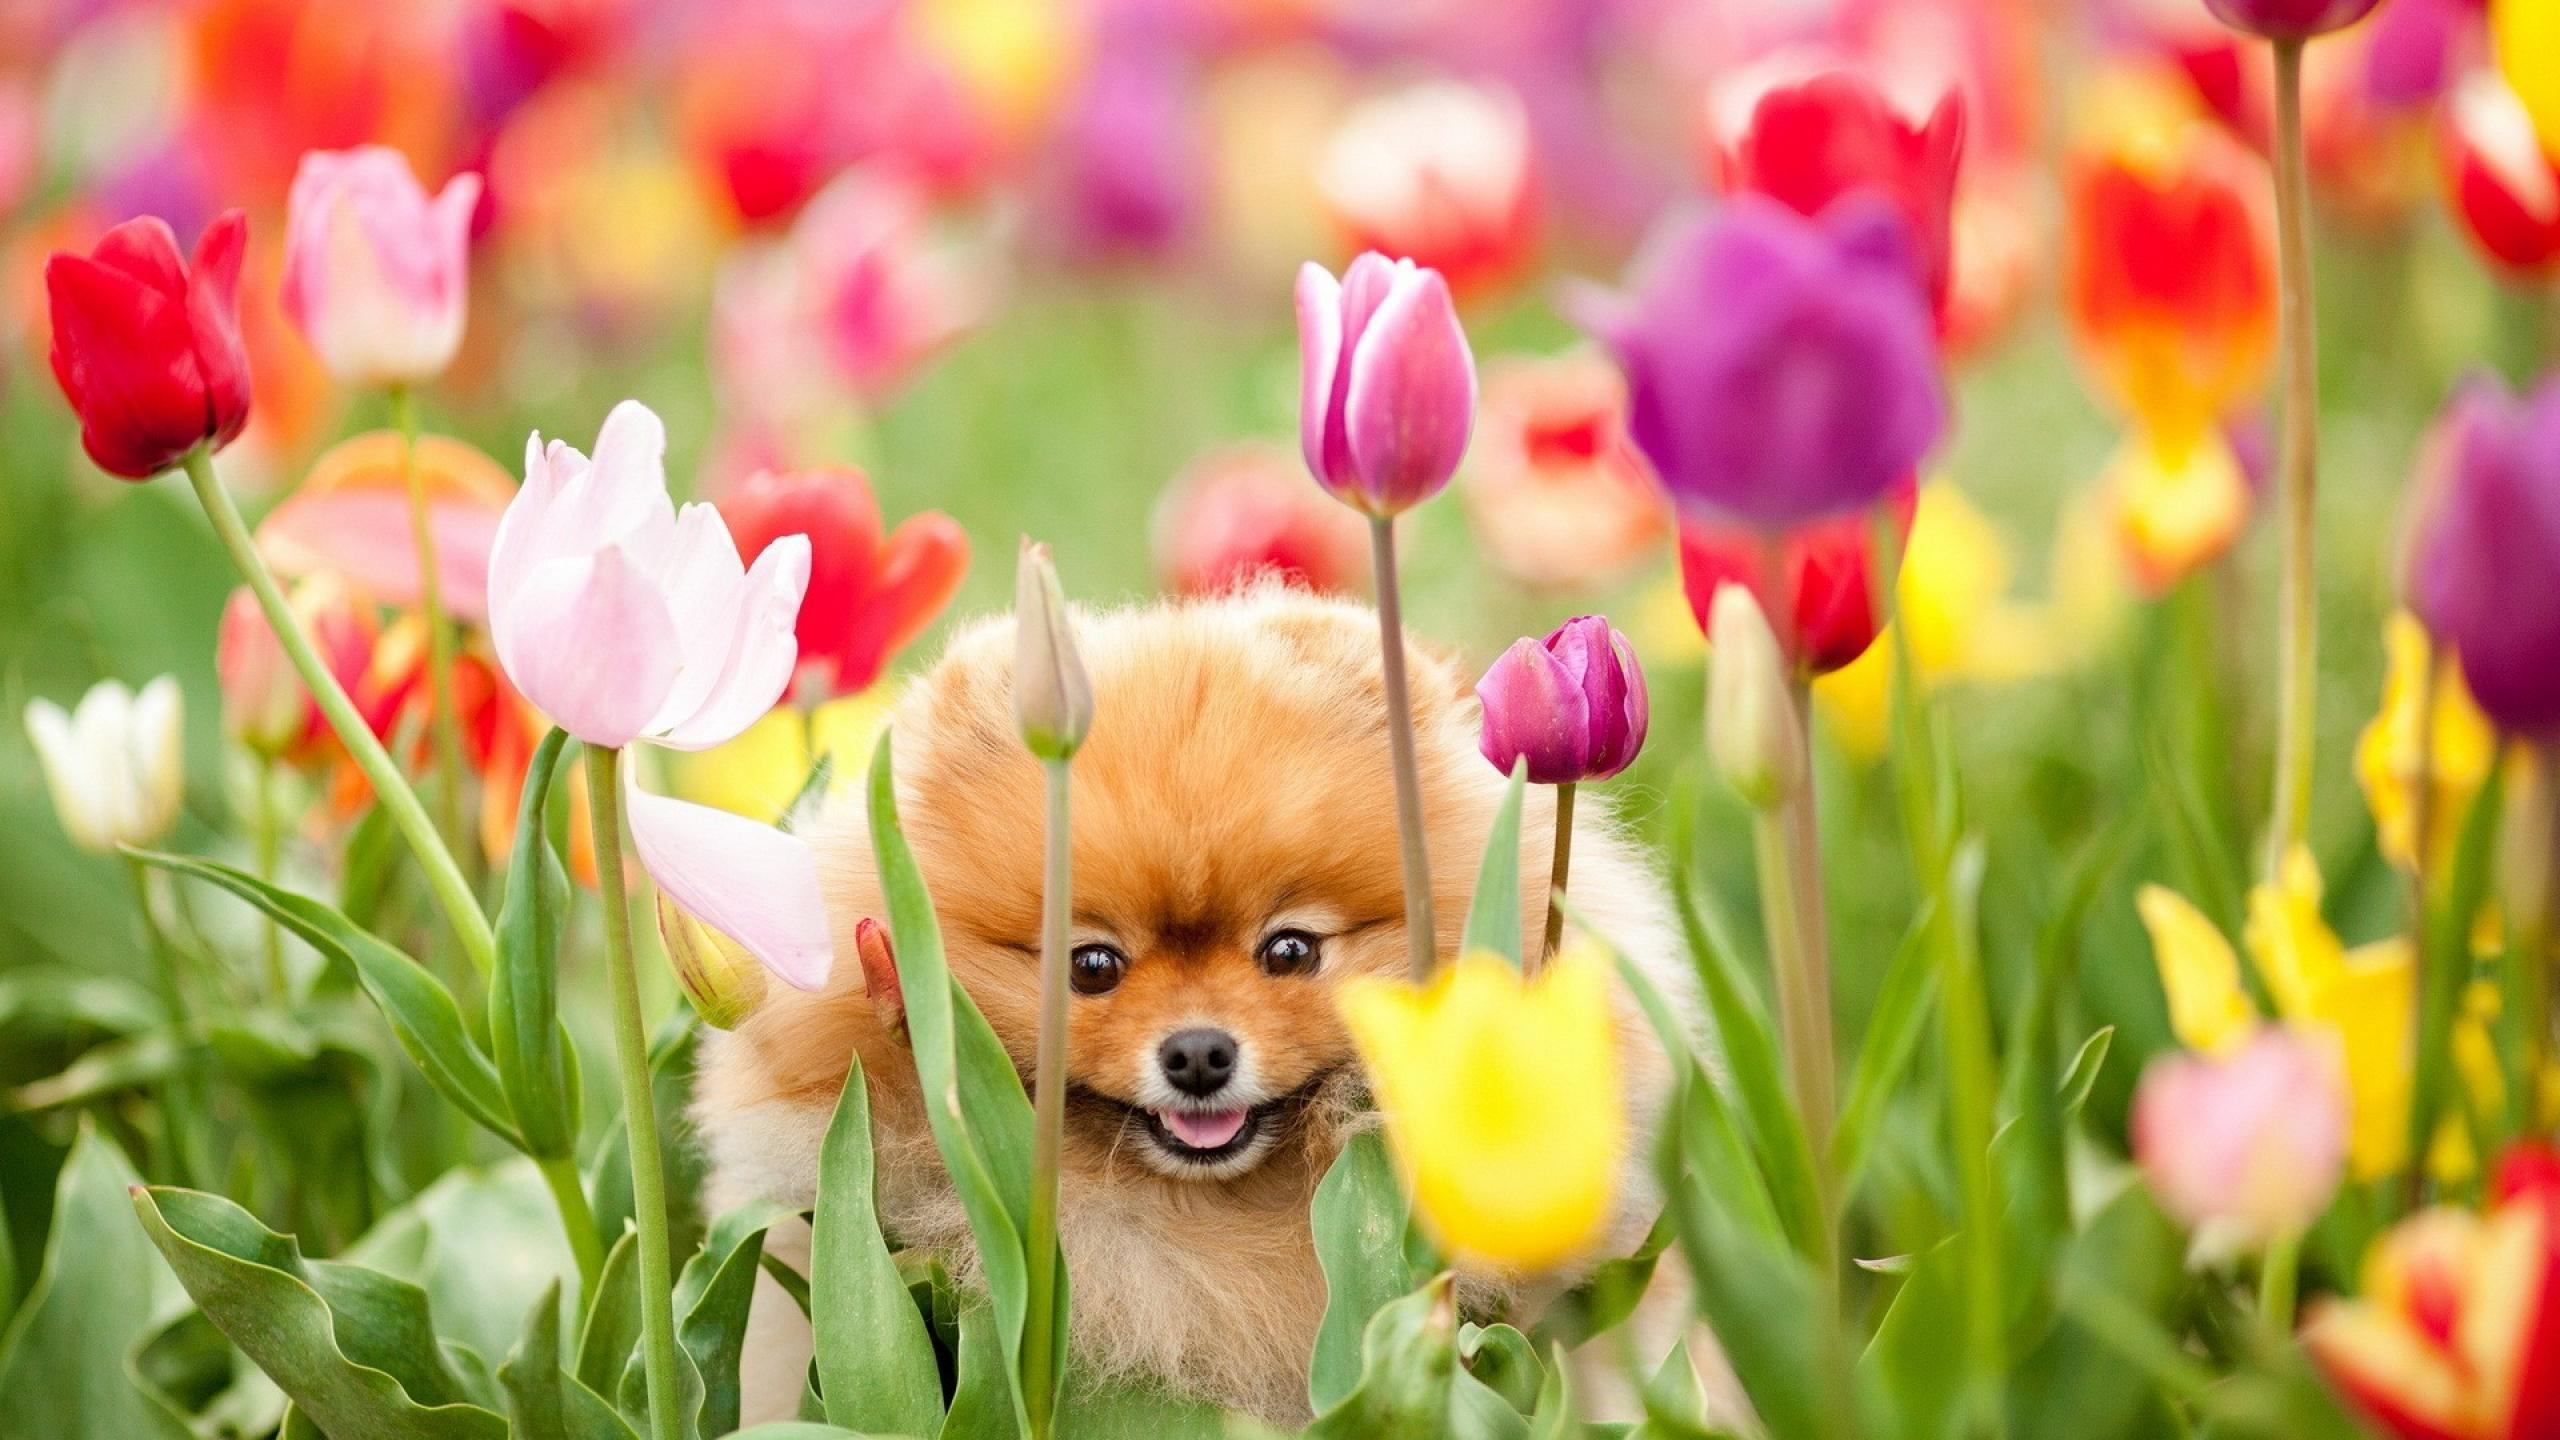 16065 download wallpaper Animals, Dogs screensavers and pictures for free